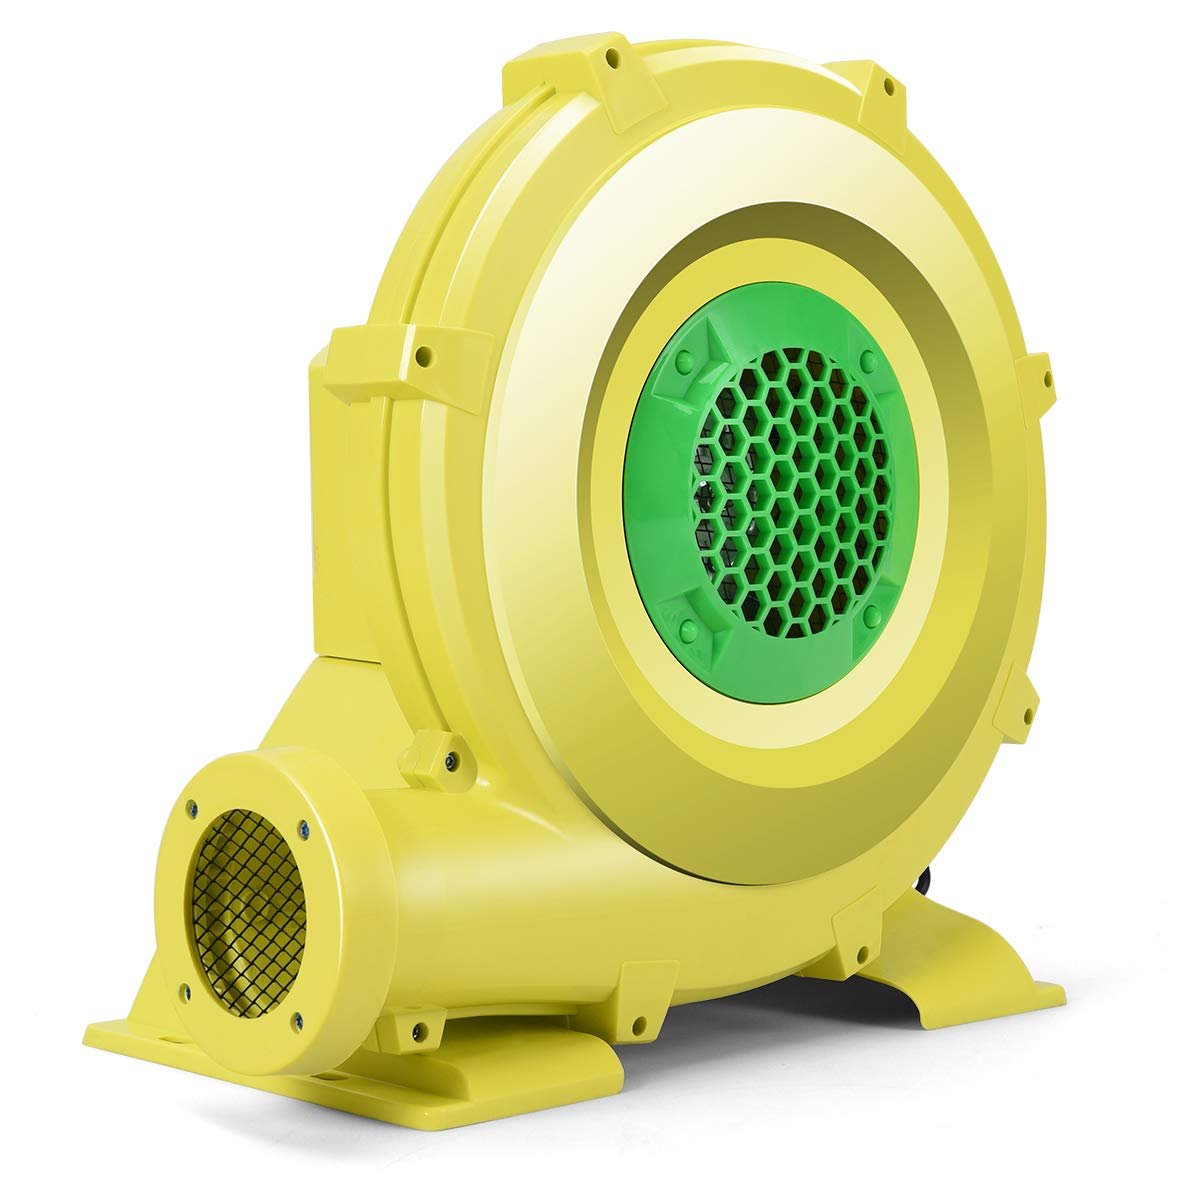 Costzon Air Blower, Pump Fan Commercial Inflatable Bouncer Blower, Perfect for Inflatable Bounce House, Jumper, Bouncy Castle 950 Watt 1.25HP Yellow